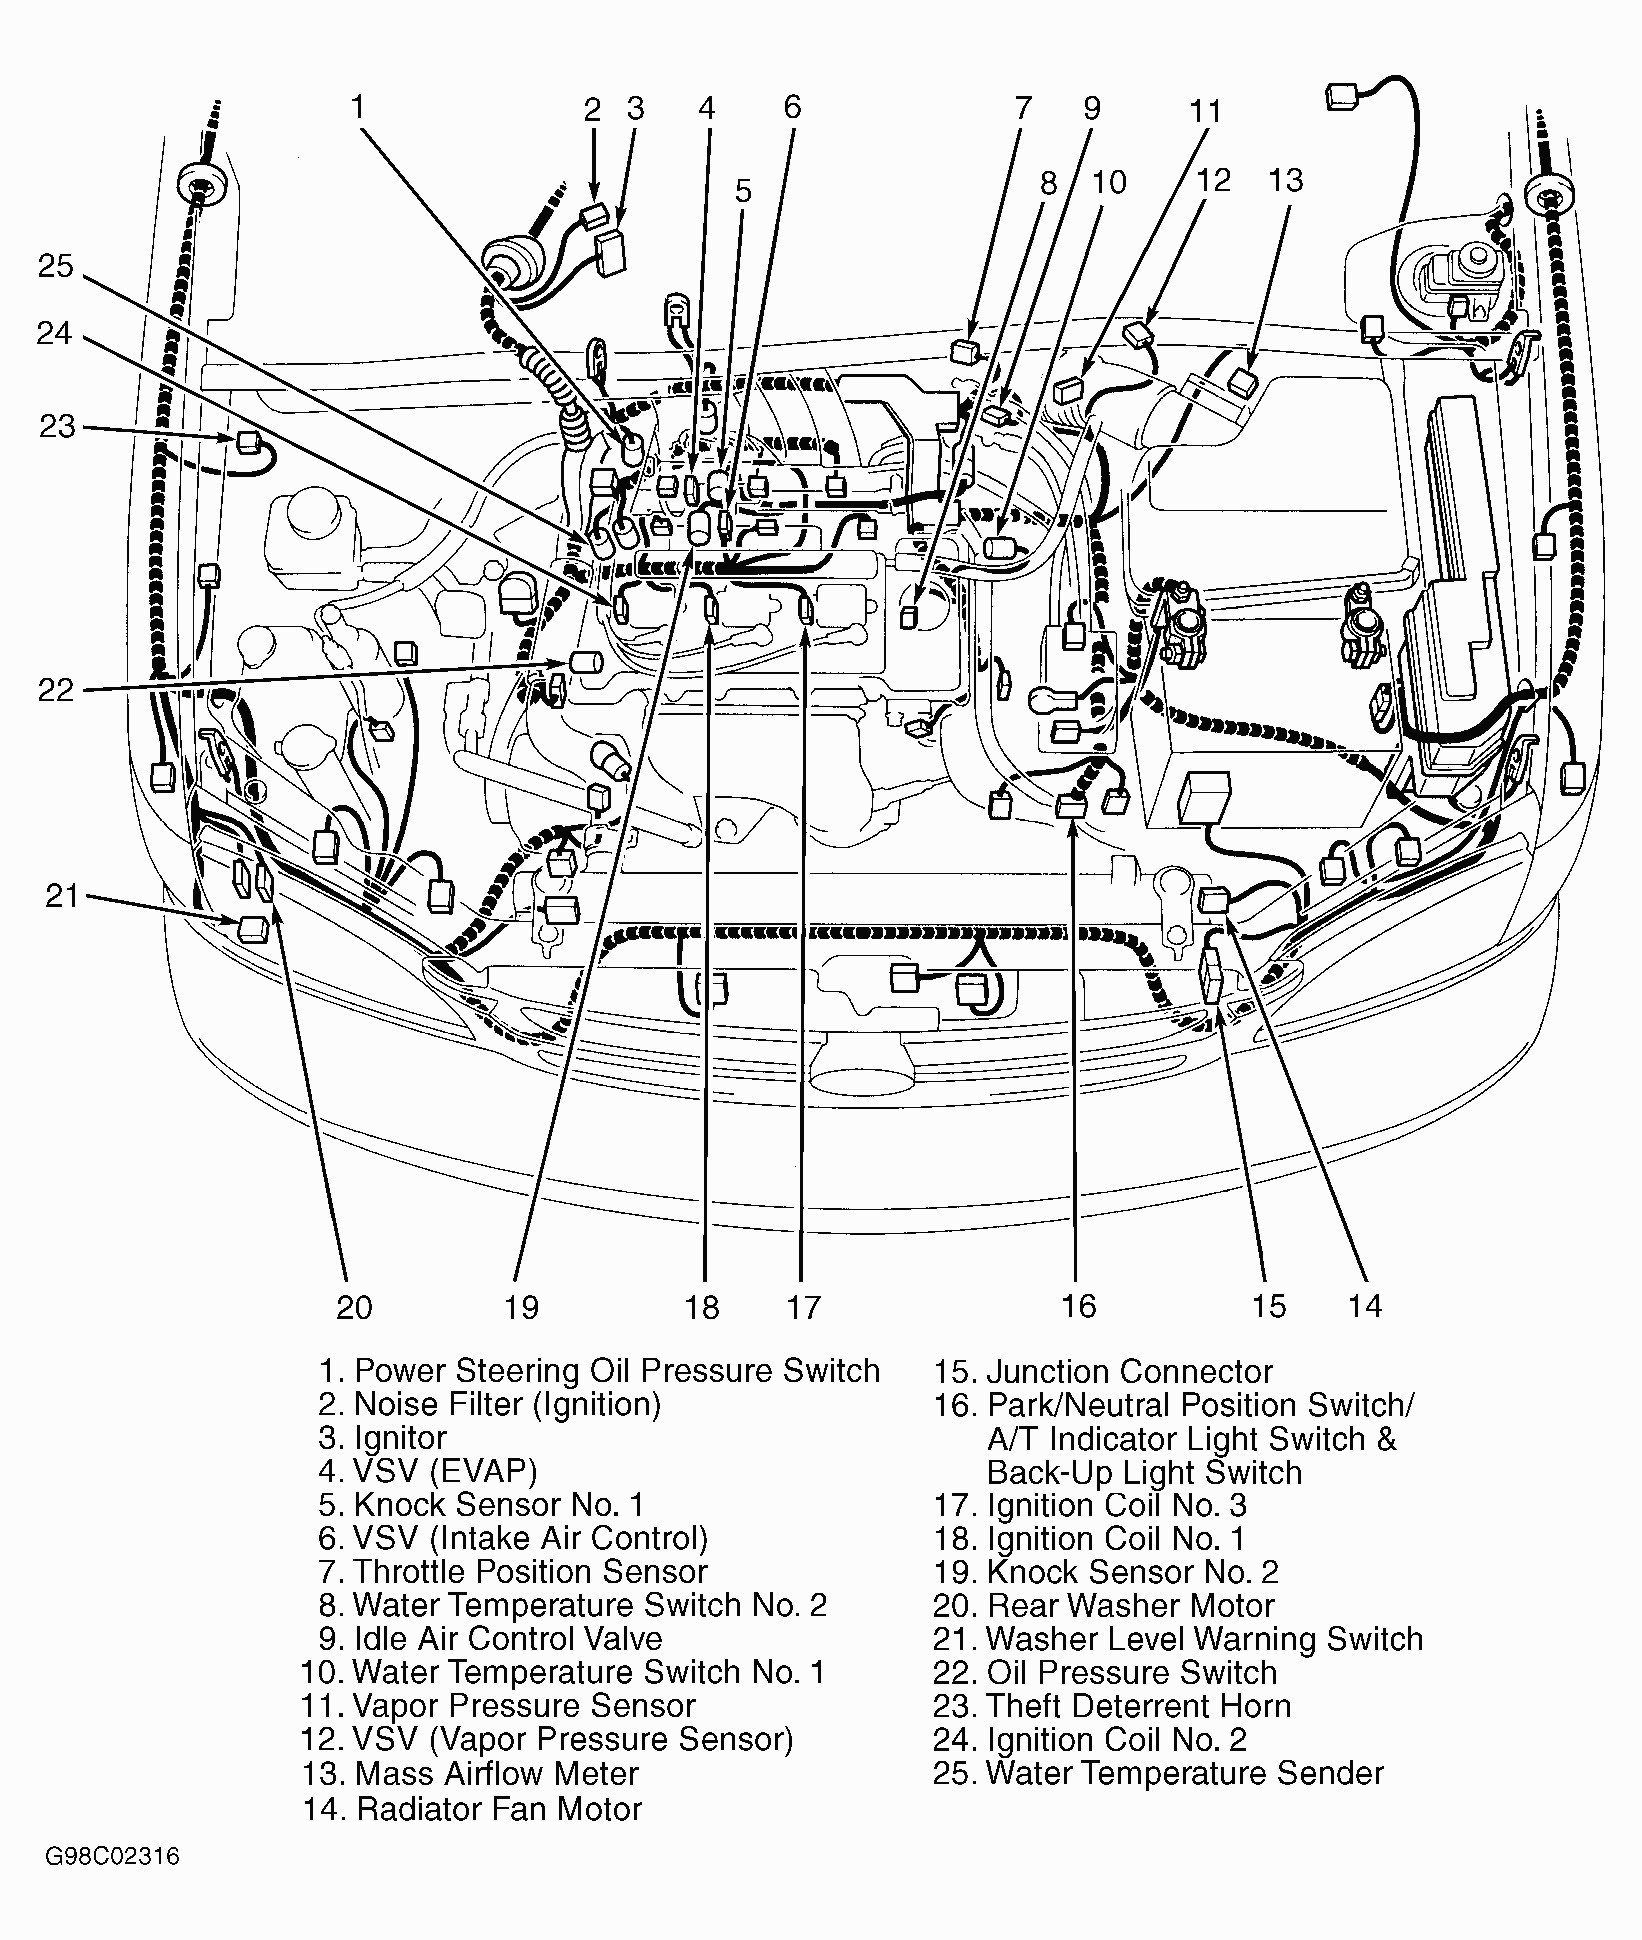 2005 Toyota Tacoma Engine Diagram My Wiring Diagram